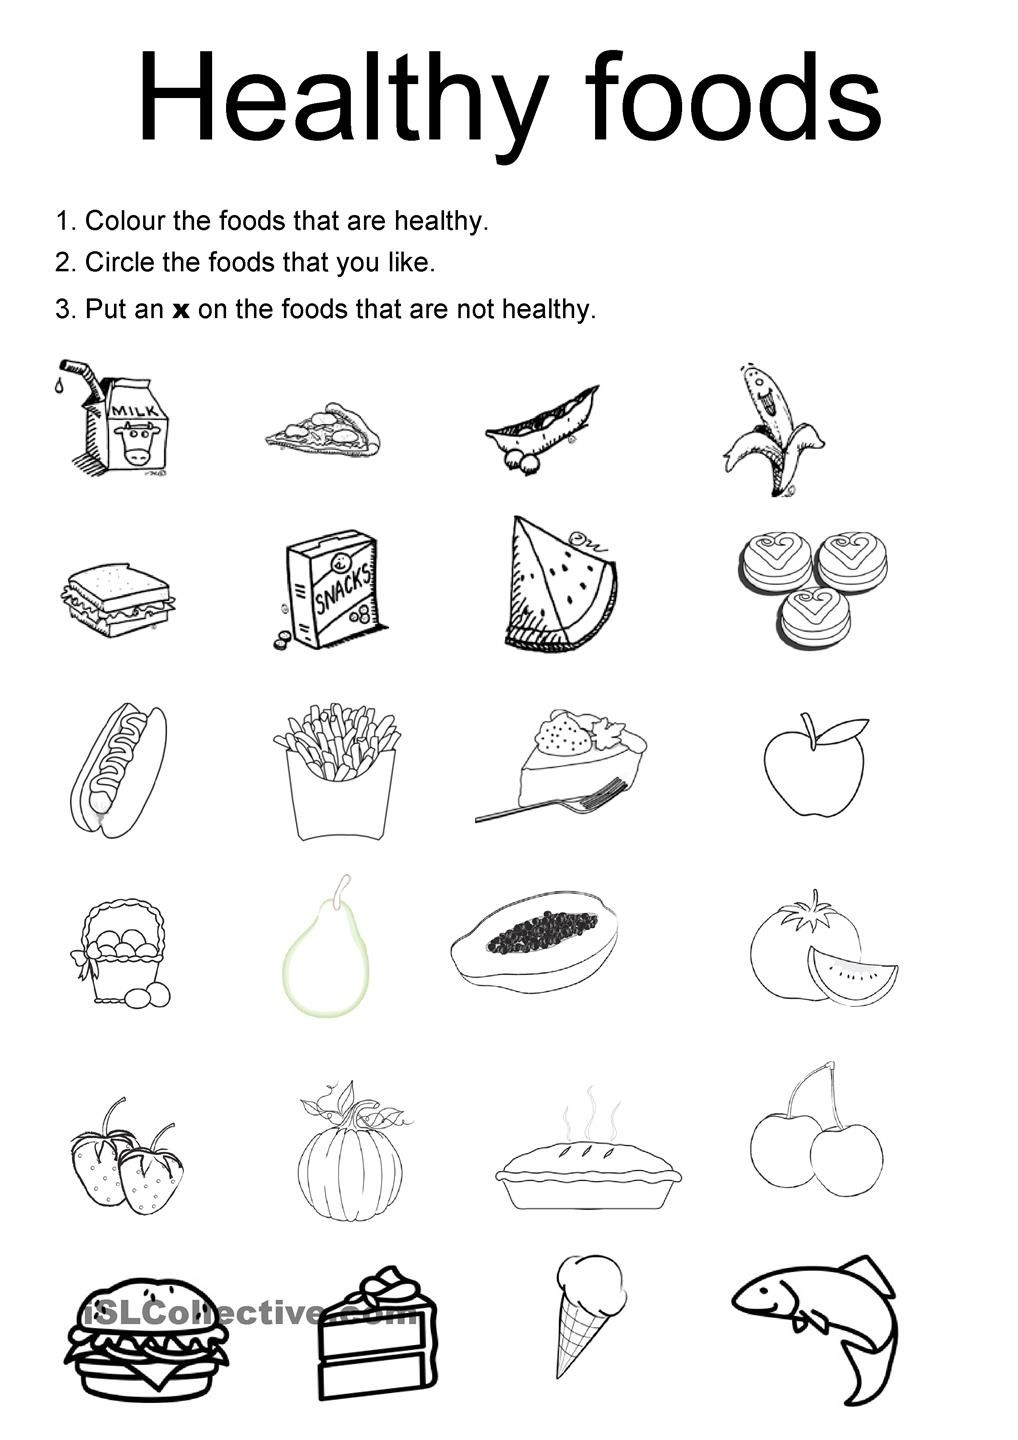 Worksheets Health And Nutrition Worksheets healthy foods projects to try pinterest worksheets galleries and food